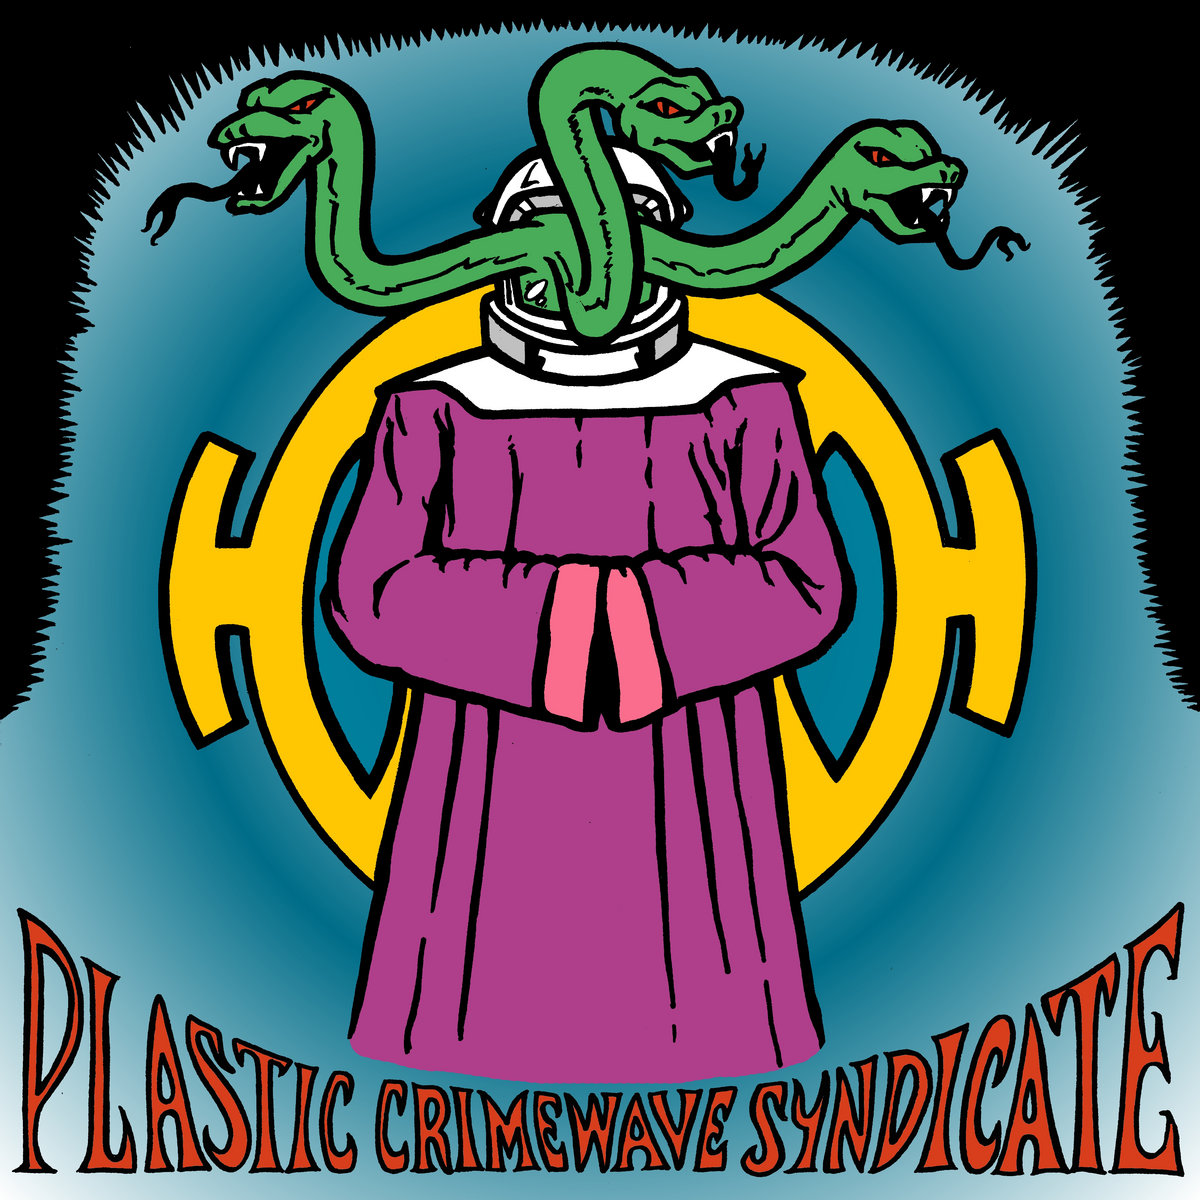 Plastic Crimewave Syndicate | Plastic Crimewave Syndicate